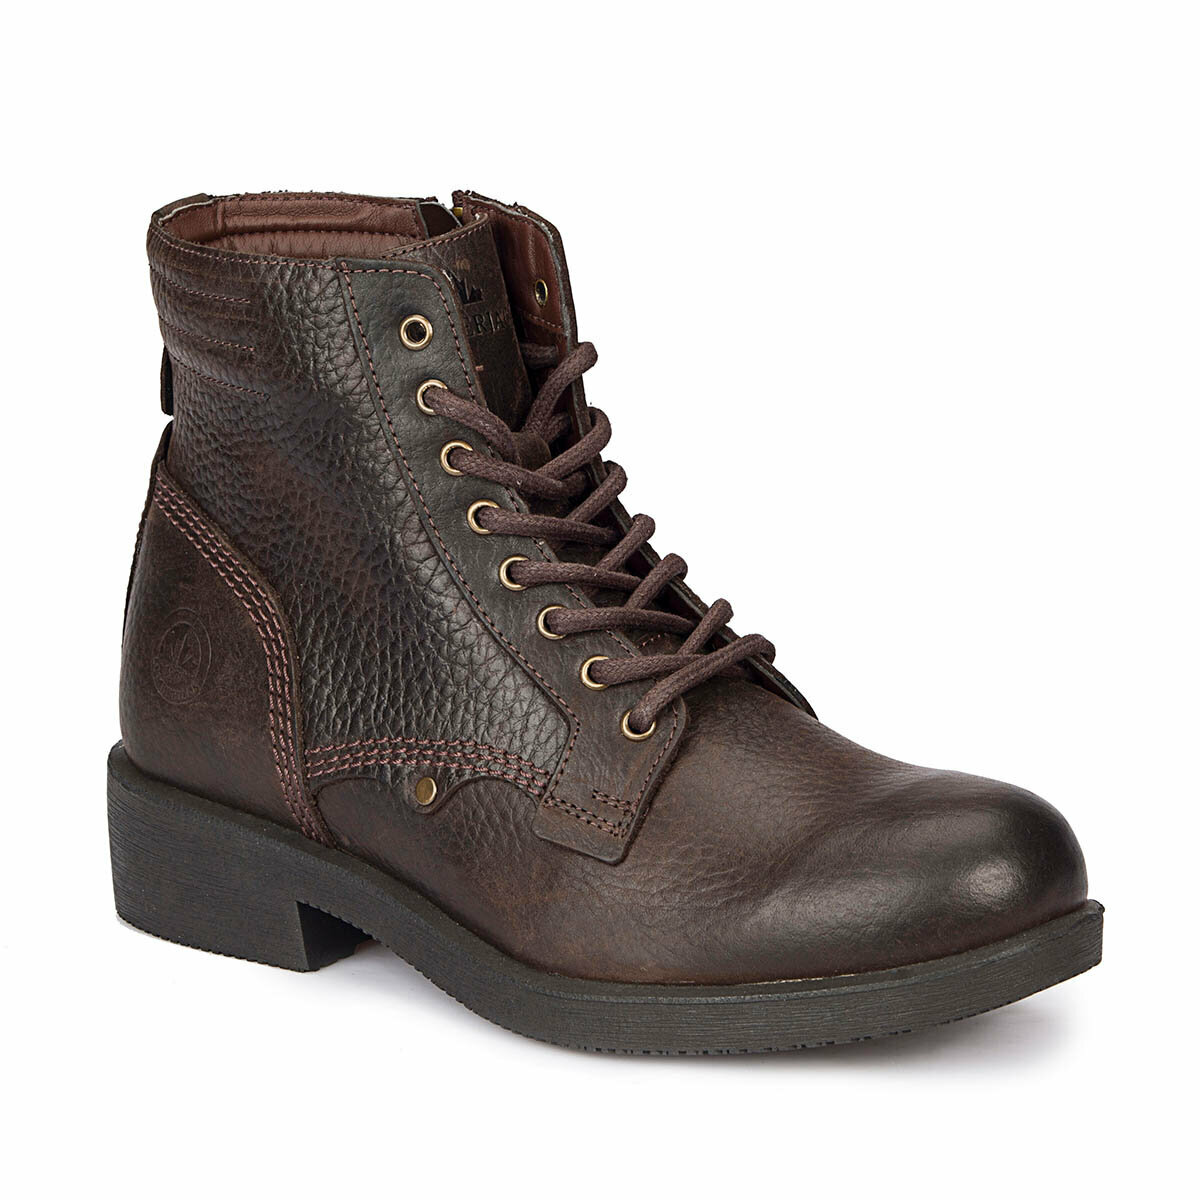 FLO FRORE Dark Coffee Men Boots LUMBERJACK